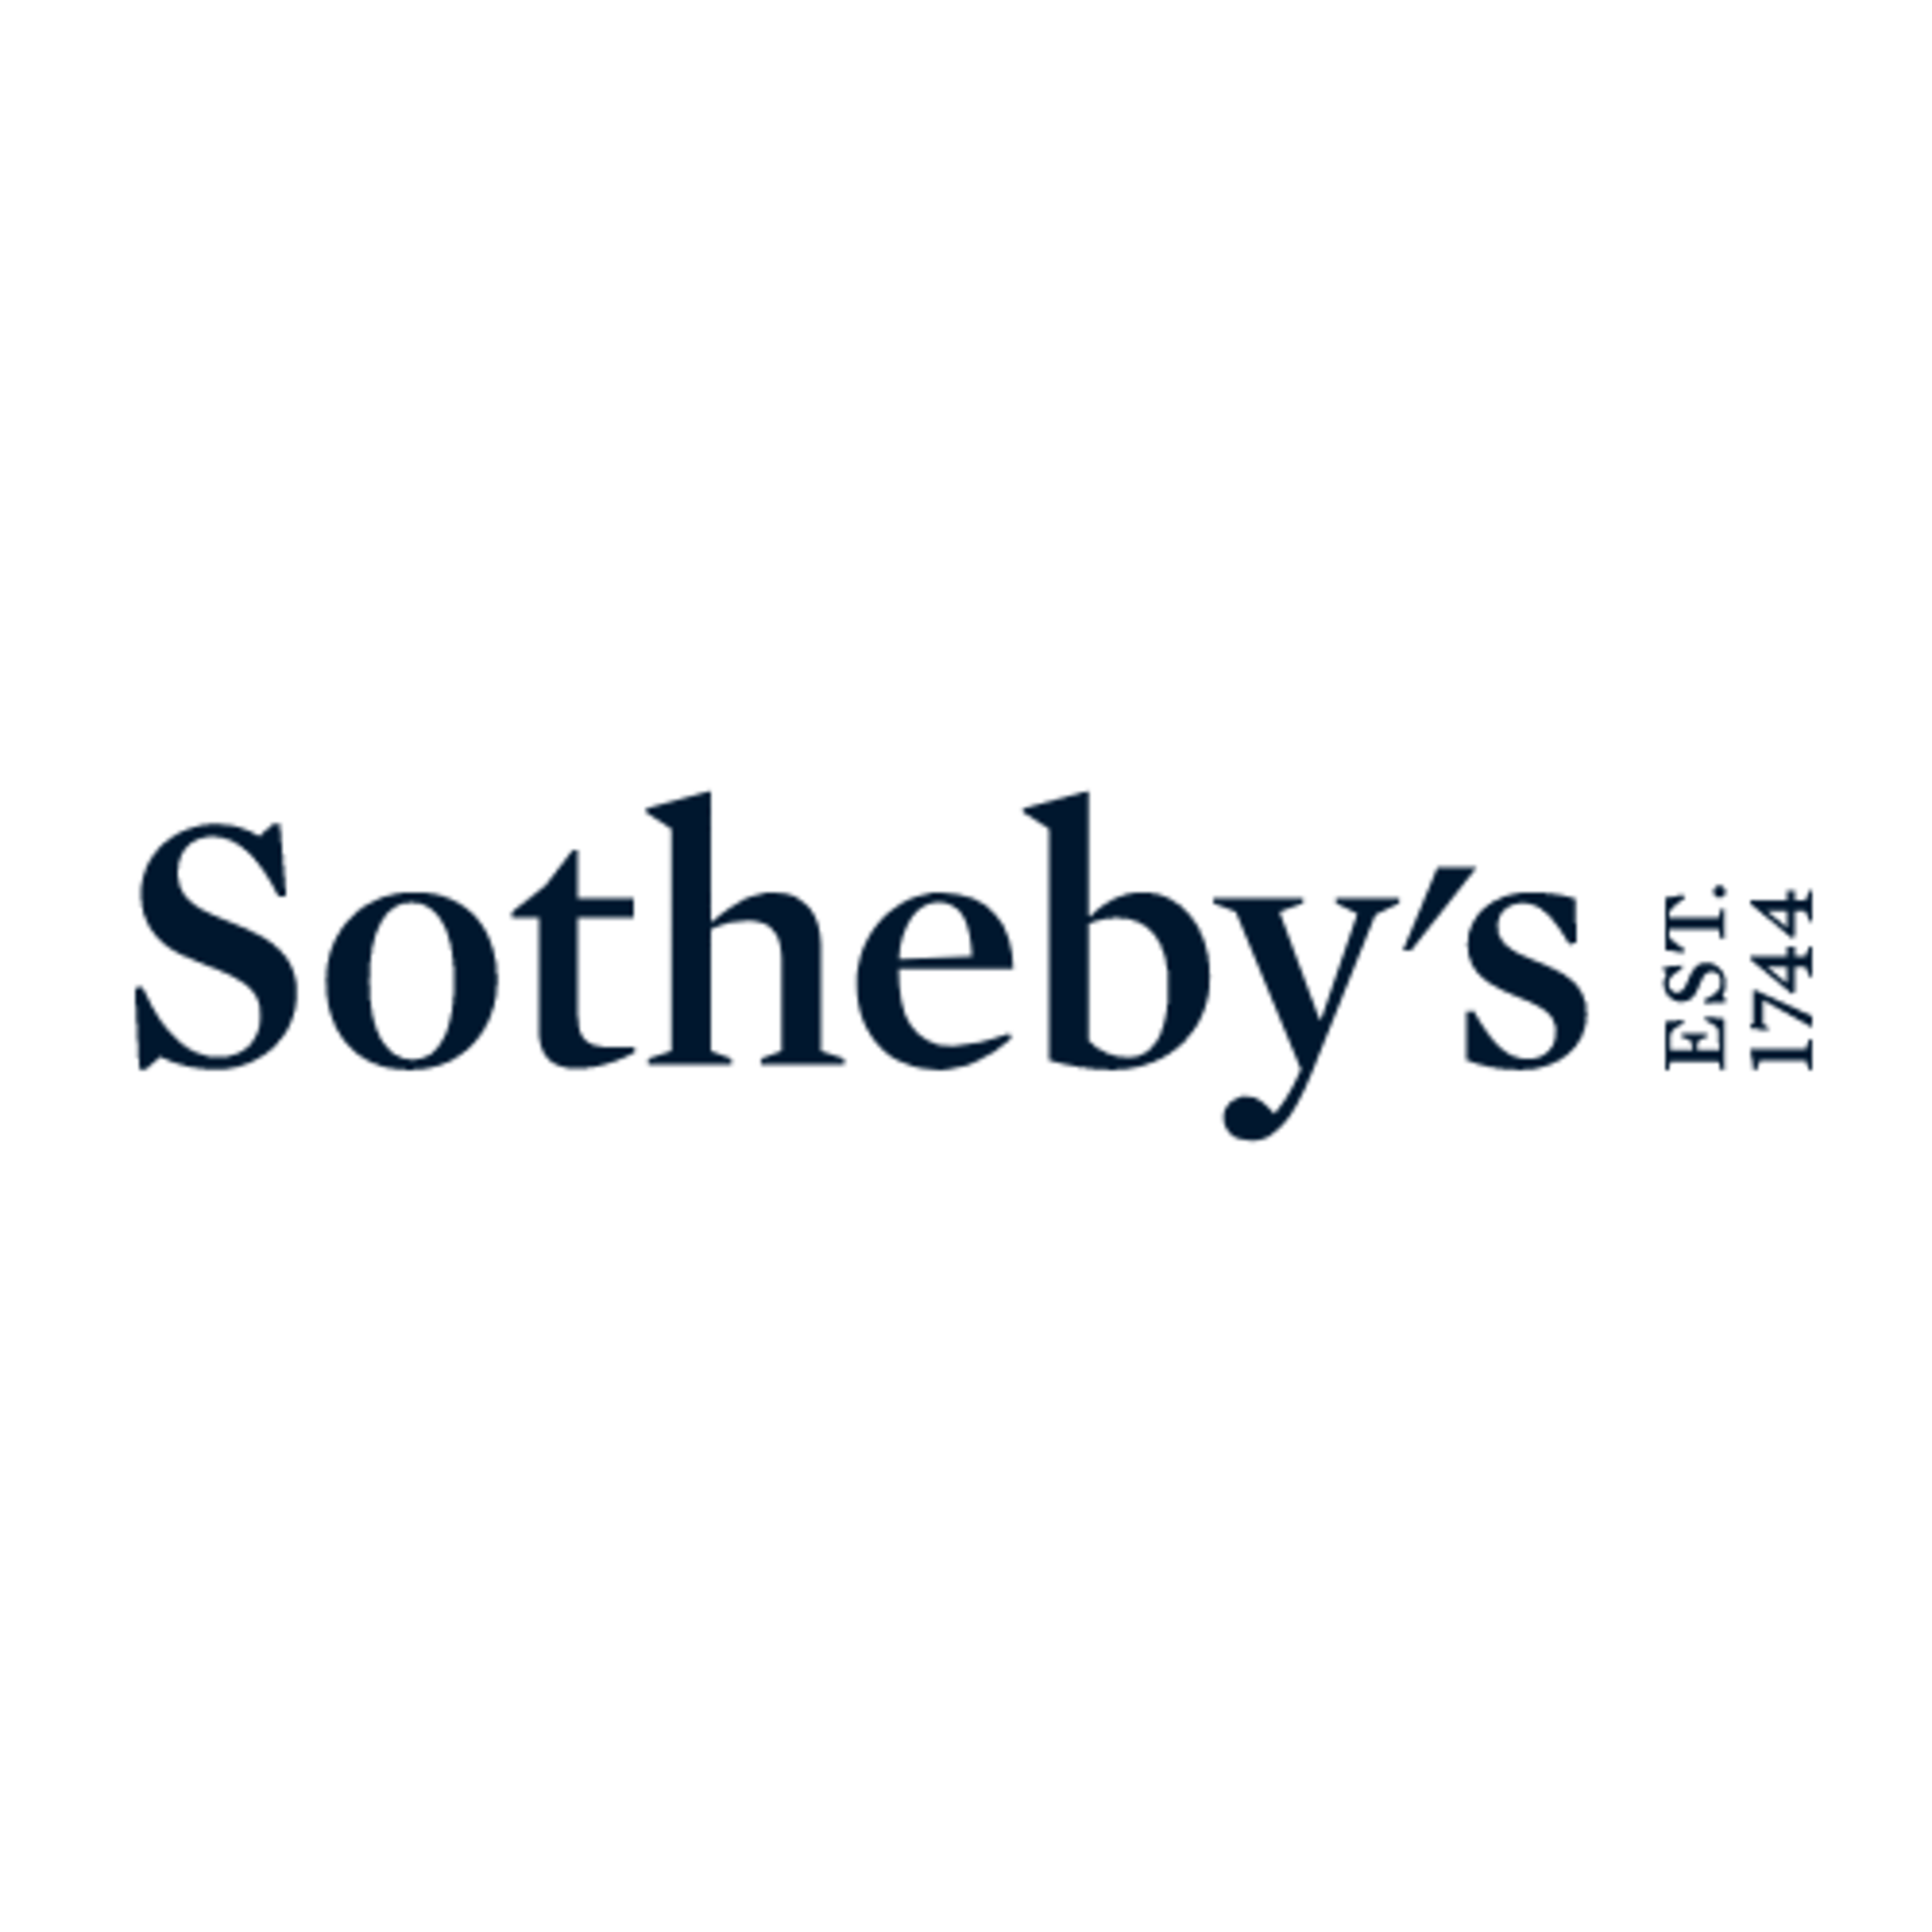 Eleni Apostolou from Sotheby's speaking about Relieve Furniture